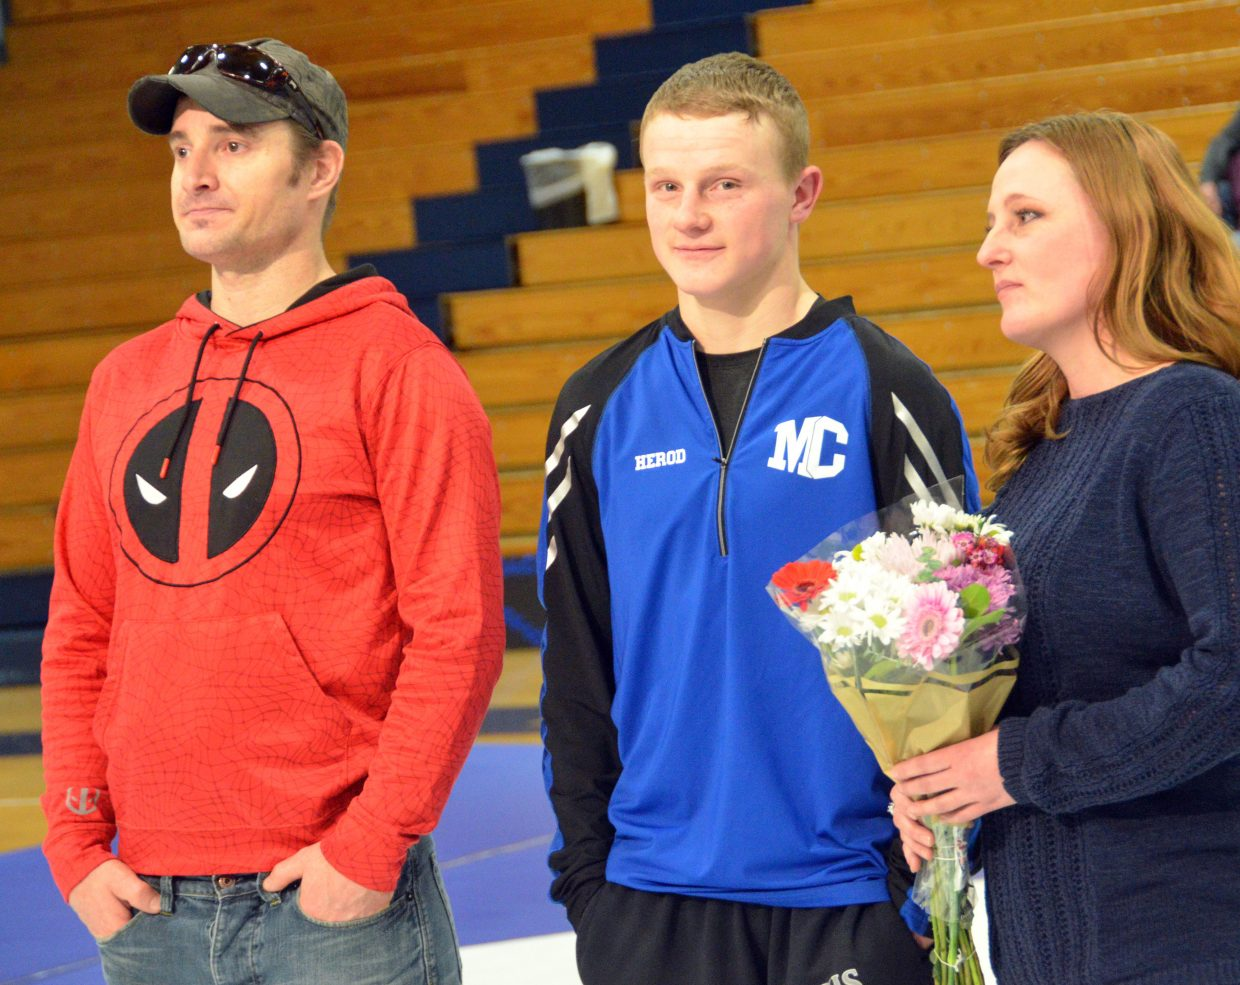 Moffat County High School's Isiaih Herod is joined by his parents as part of Senior Night for MCHS wrestling.